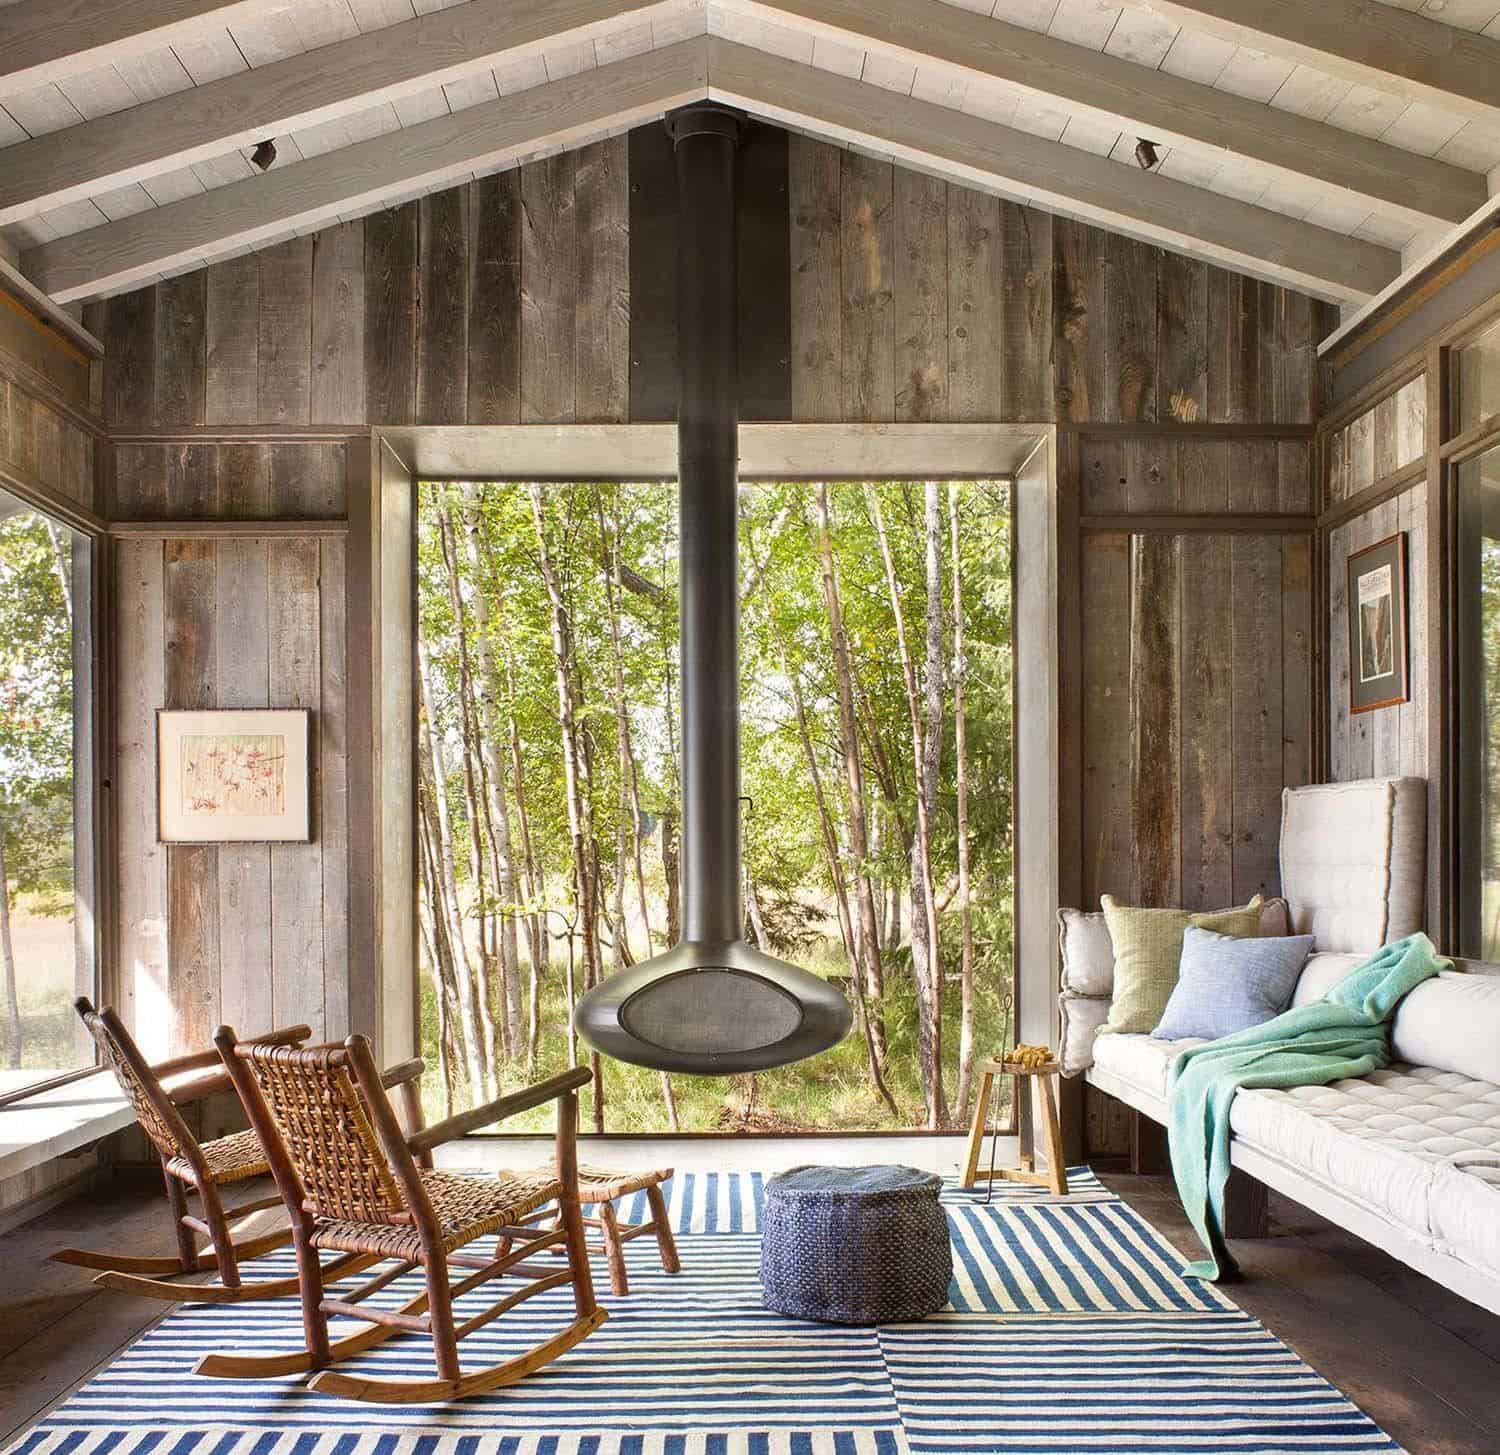 Modern-Rustic Cabin-Pearson Design Group-02-1 Kindesign